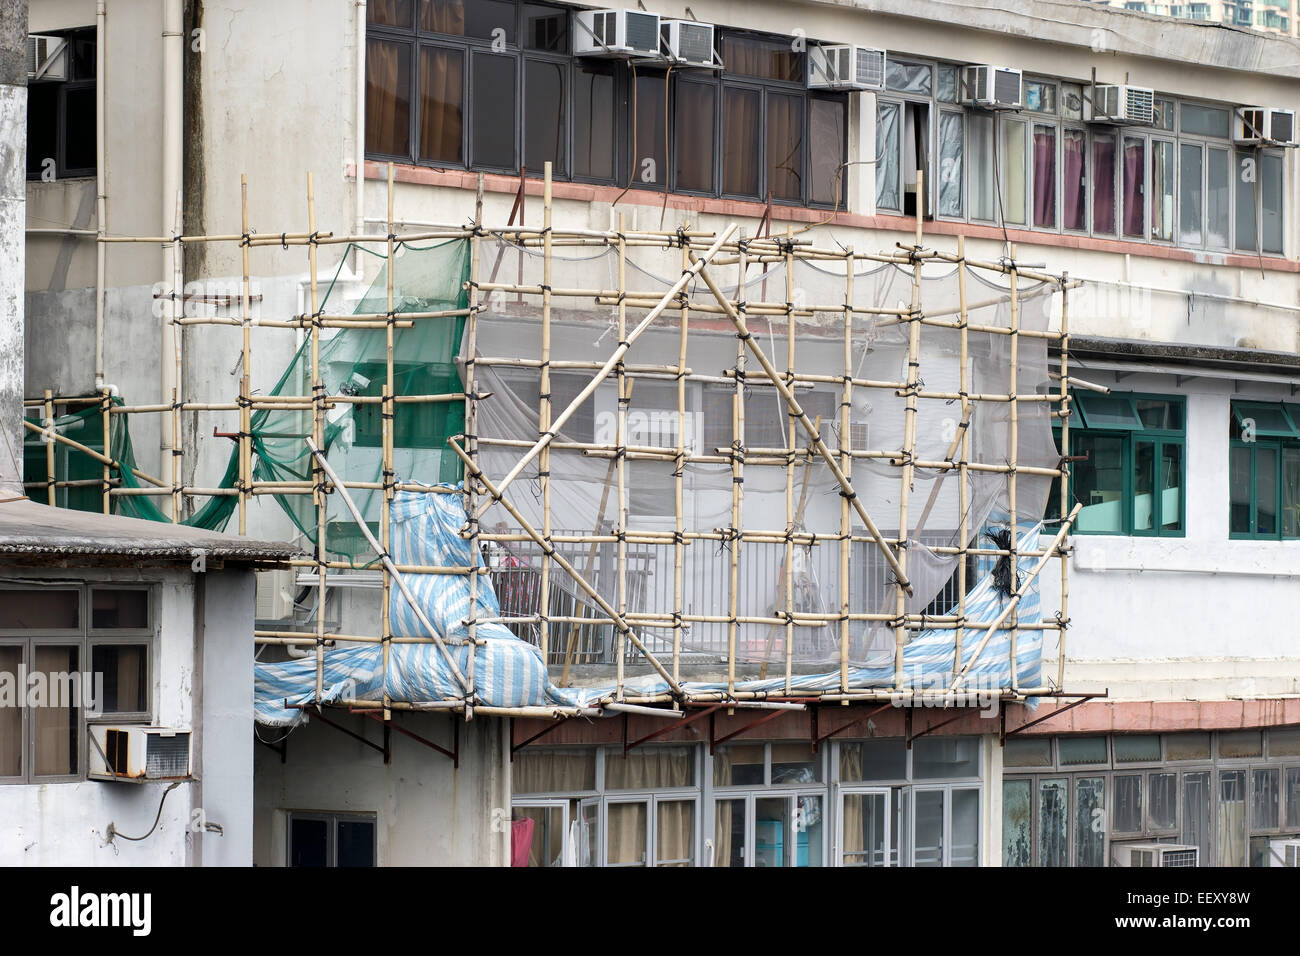 bamboo scaffolding on building height in the streets of Hong Kong - Stock Image